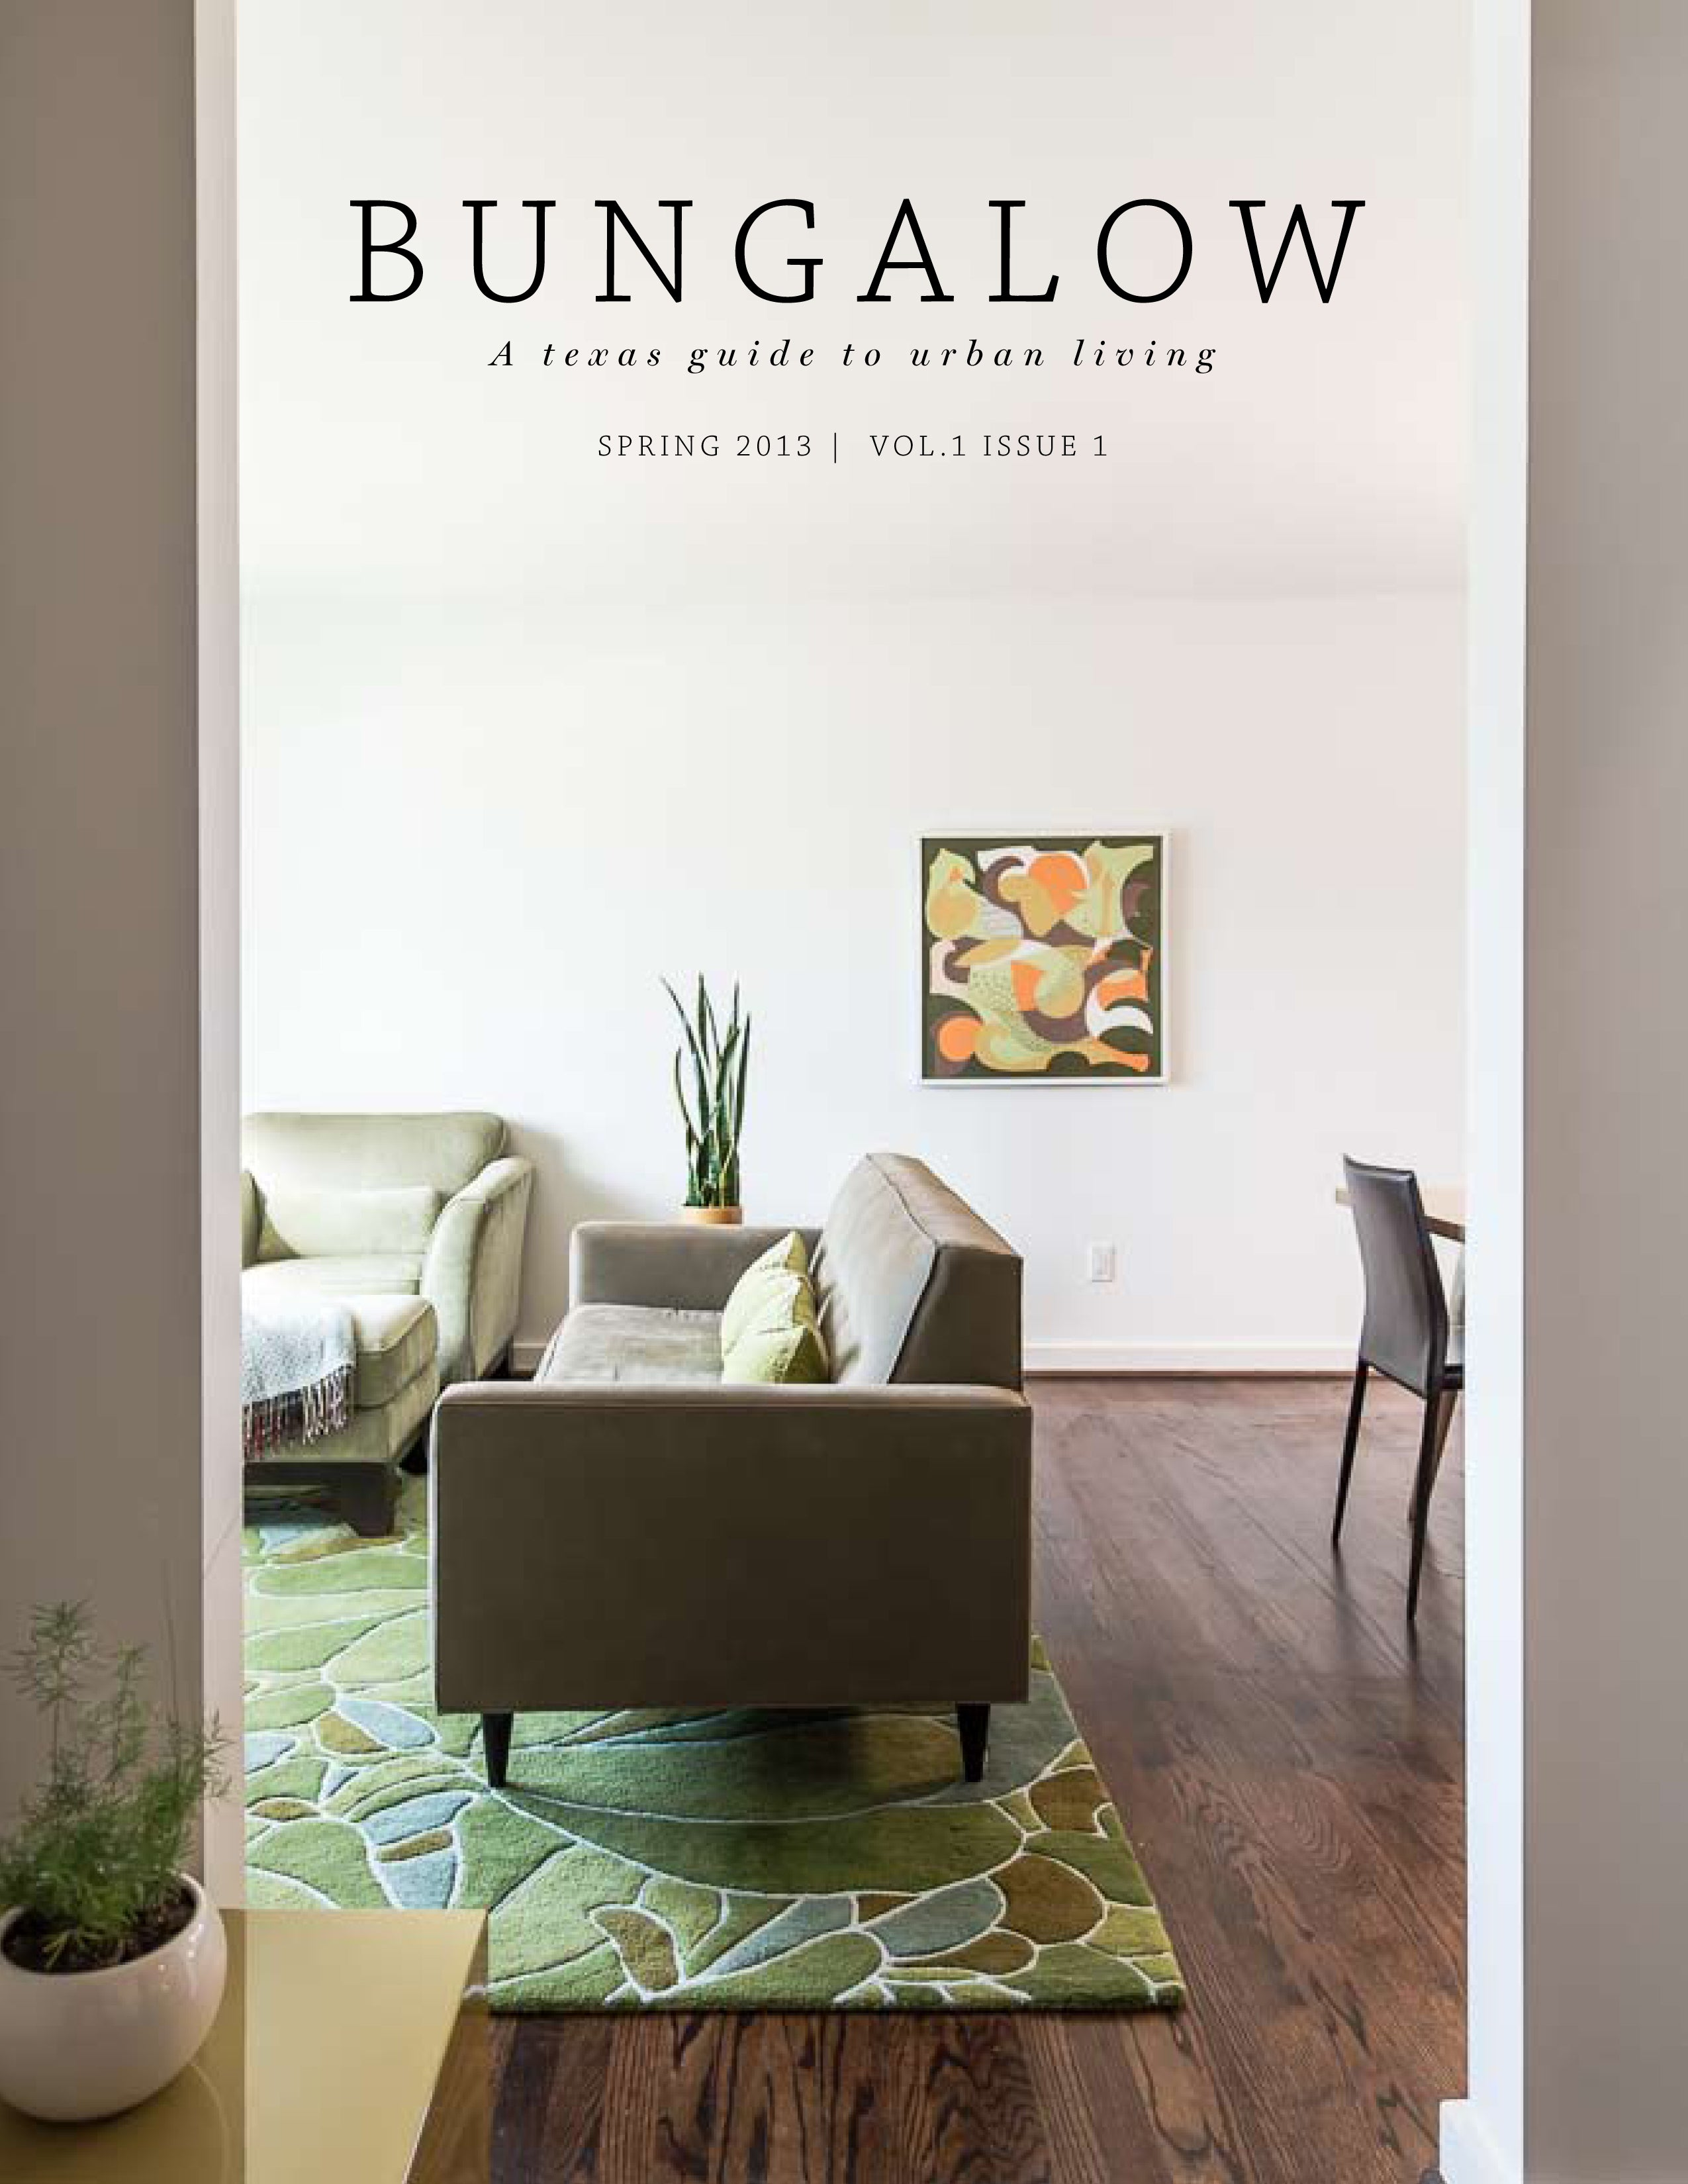 Cover of the first issue of Bungalow: A texas guide to urban living, Spring 2013